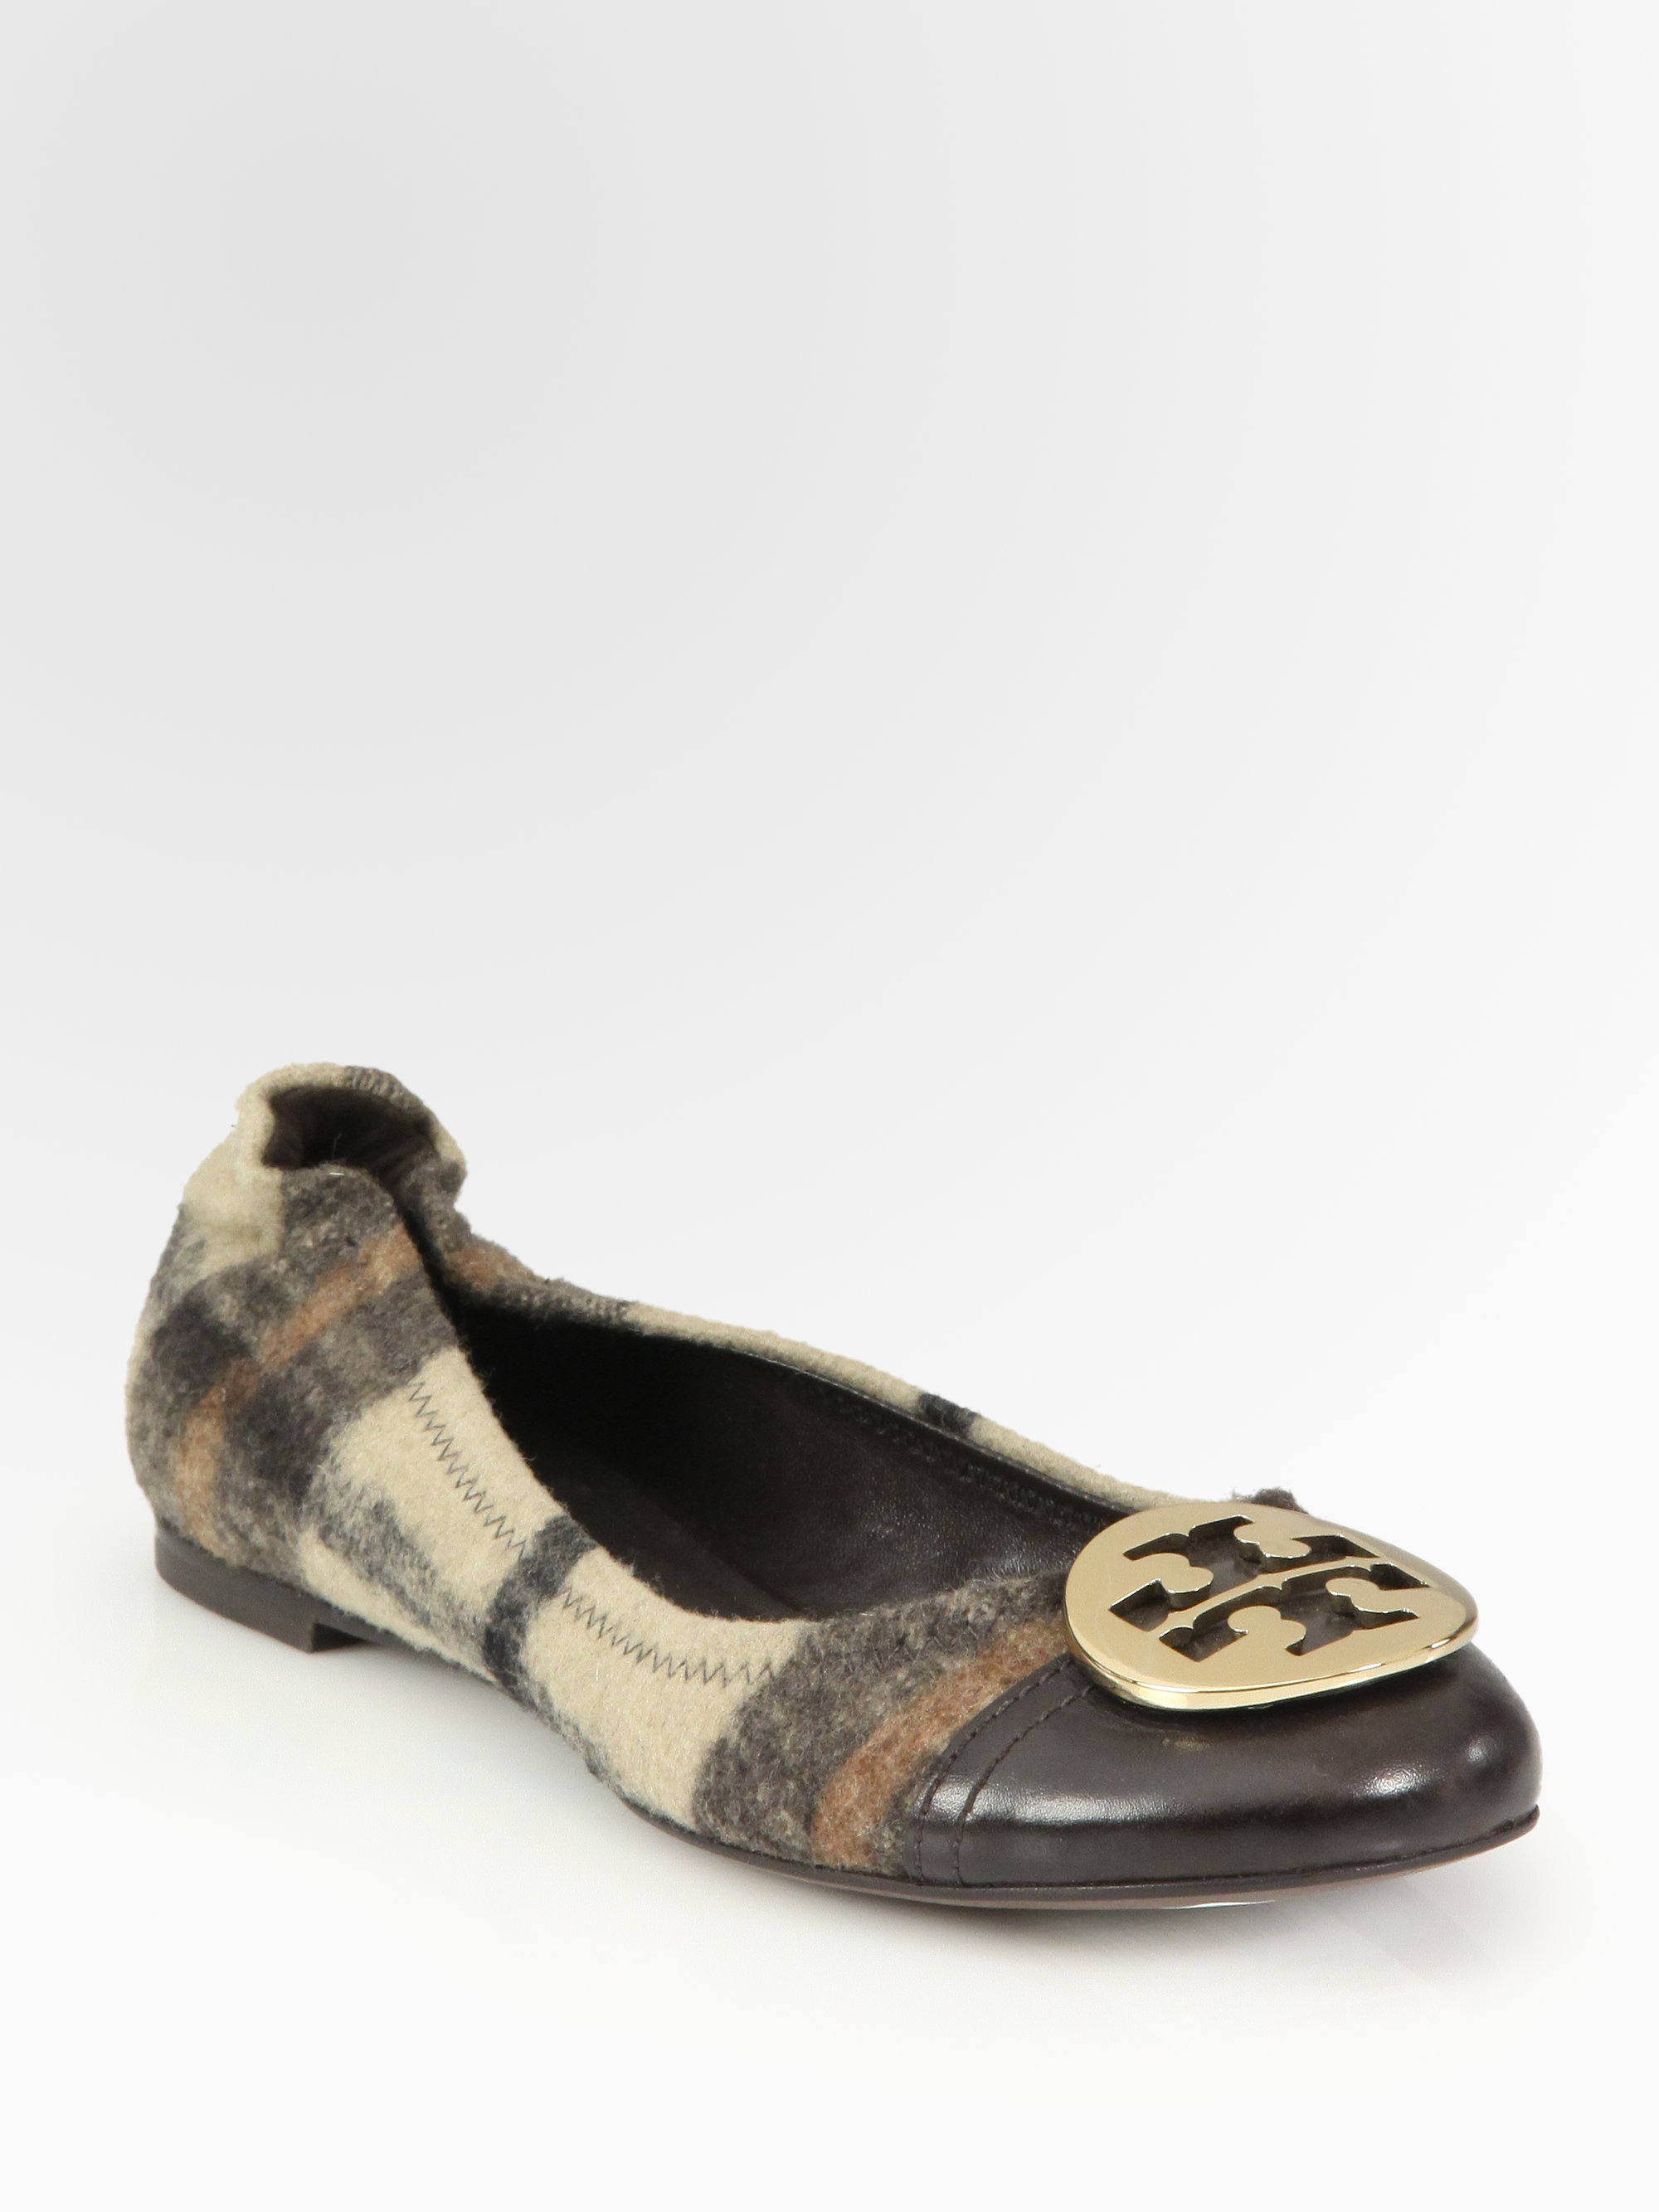 Tory Burch Serena Plaid Wool Leather Ballet Flats In